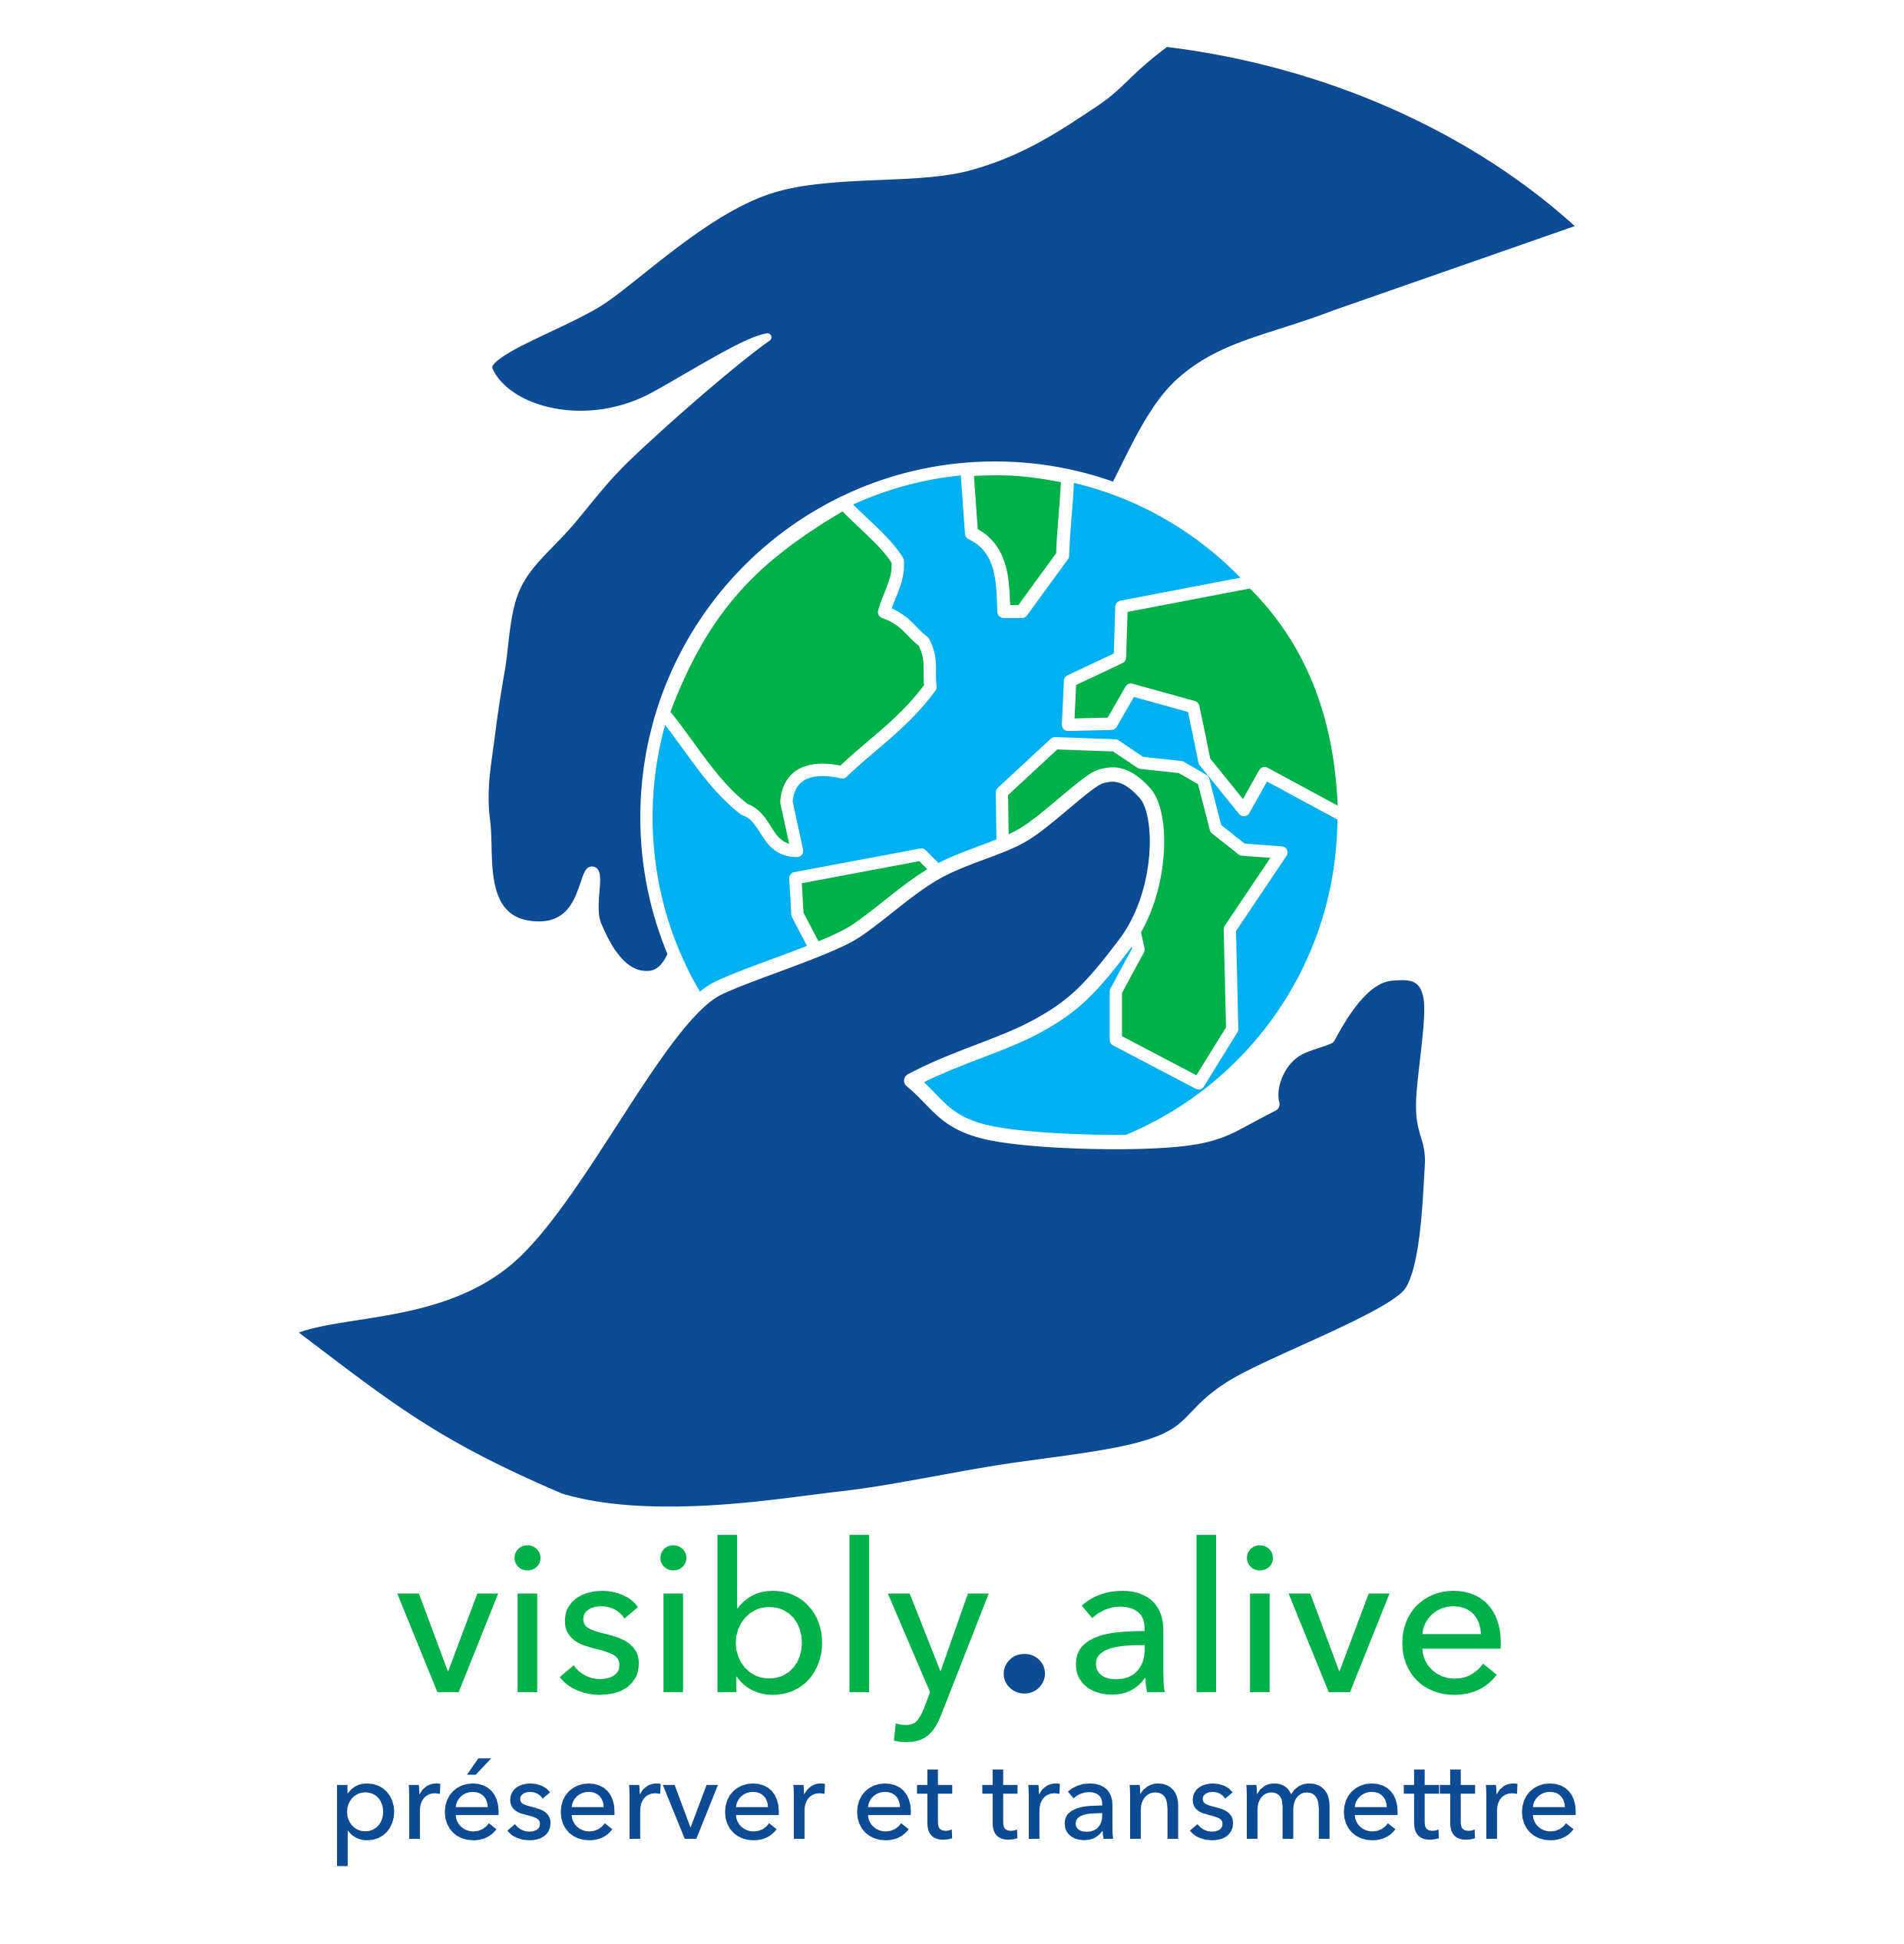 Association - visibly.alive